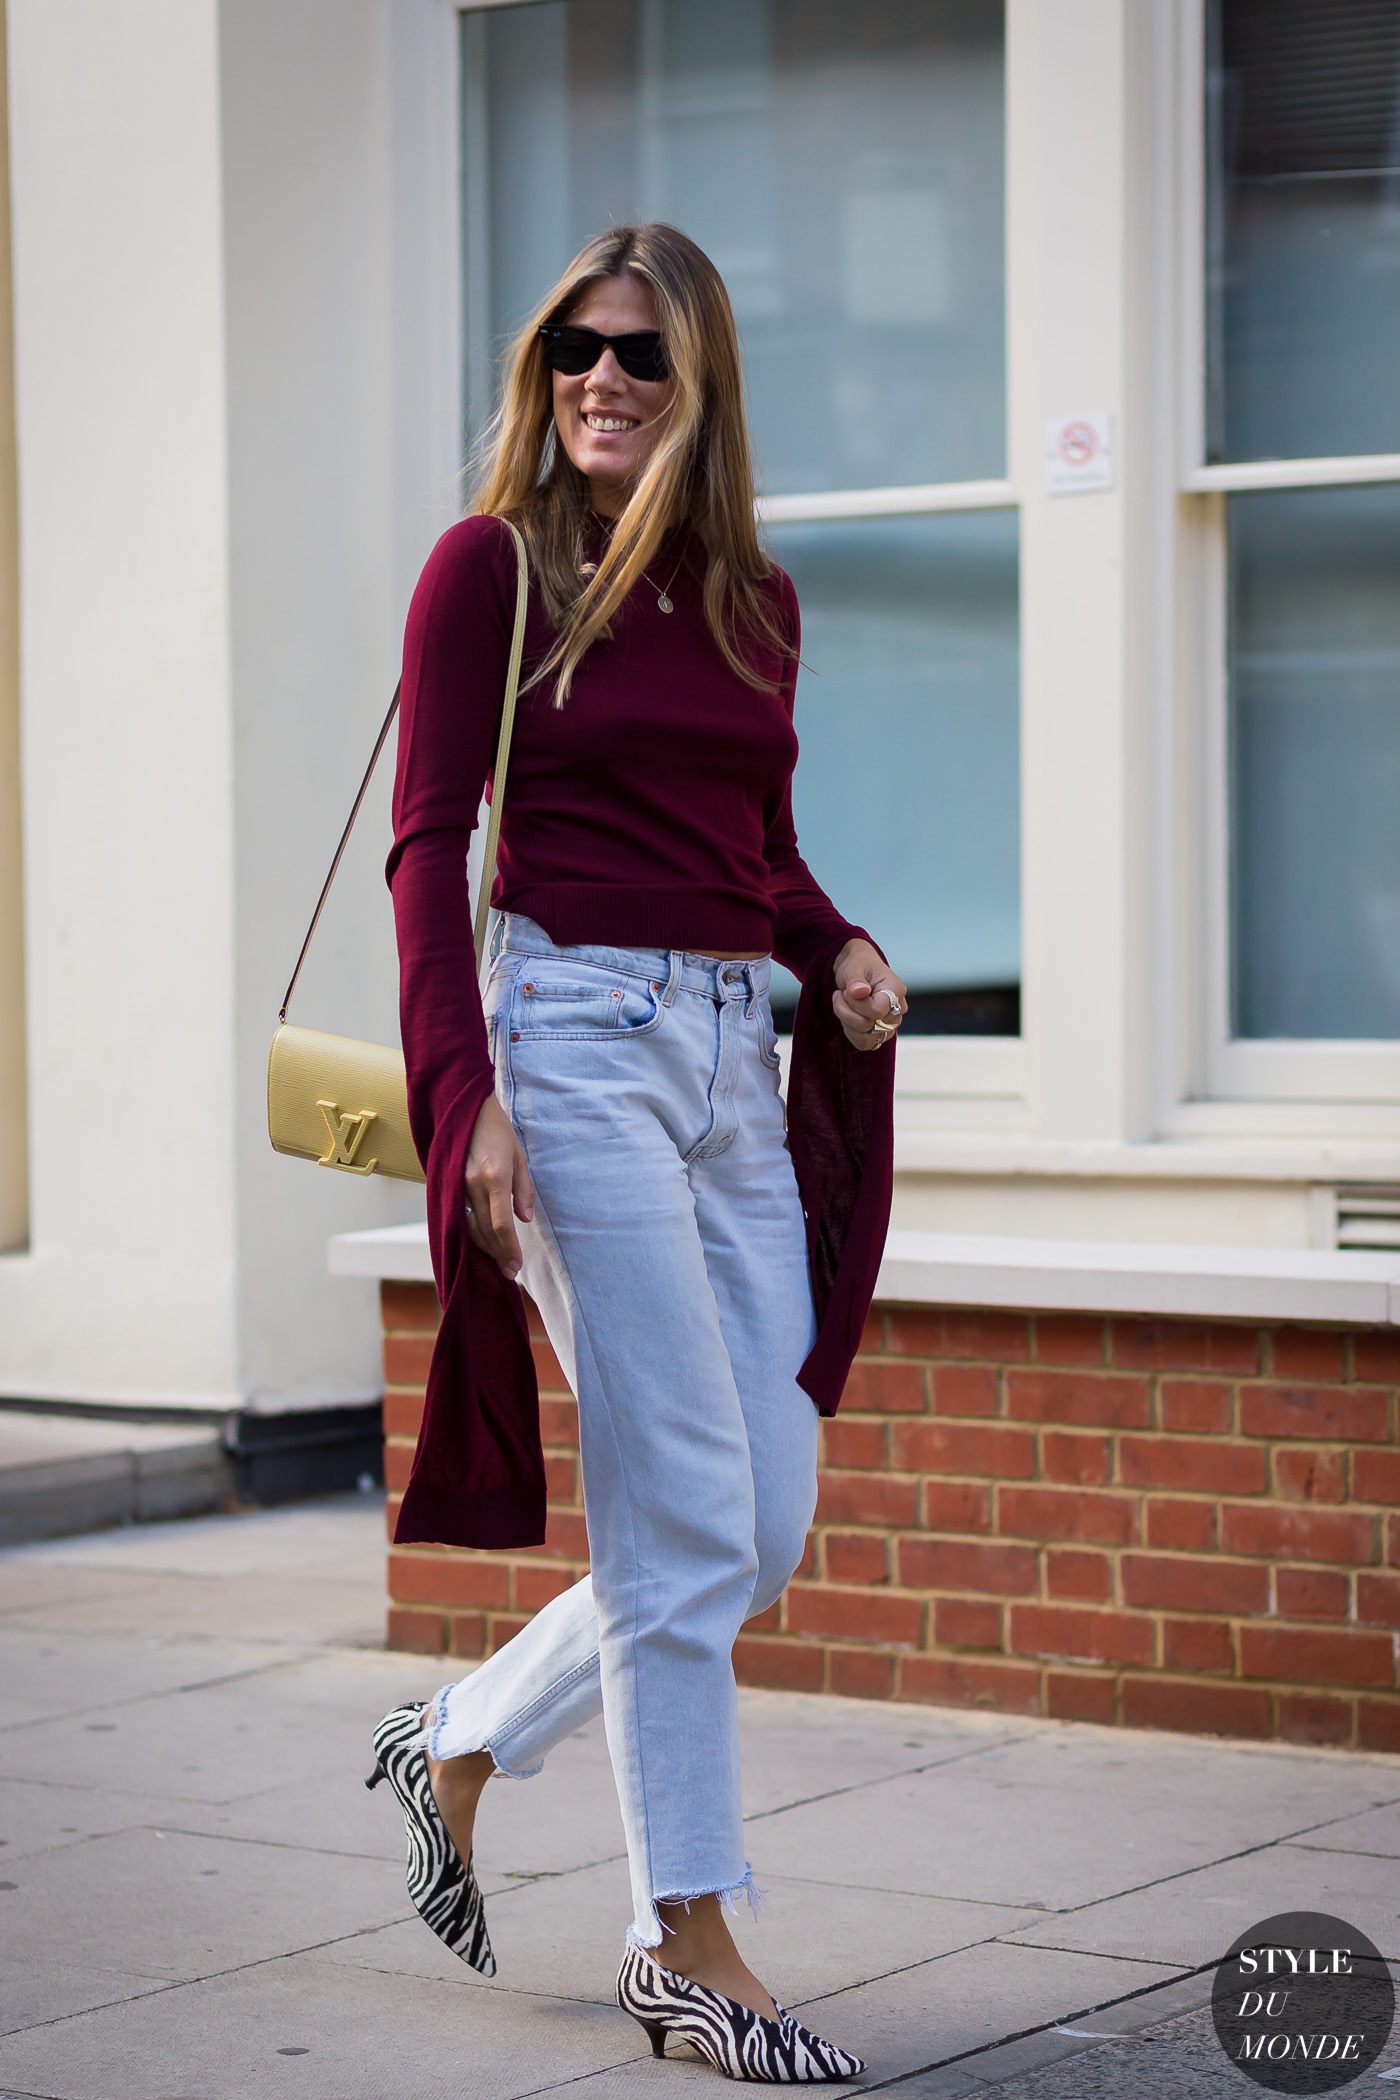 Natalie Hartley Street Style Street Fashion Streetsnaps by STYLEDUMONDE Street Style Fashion Photography